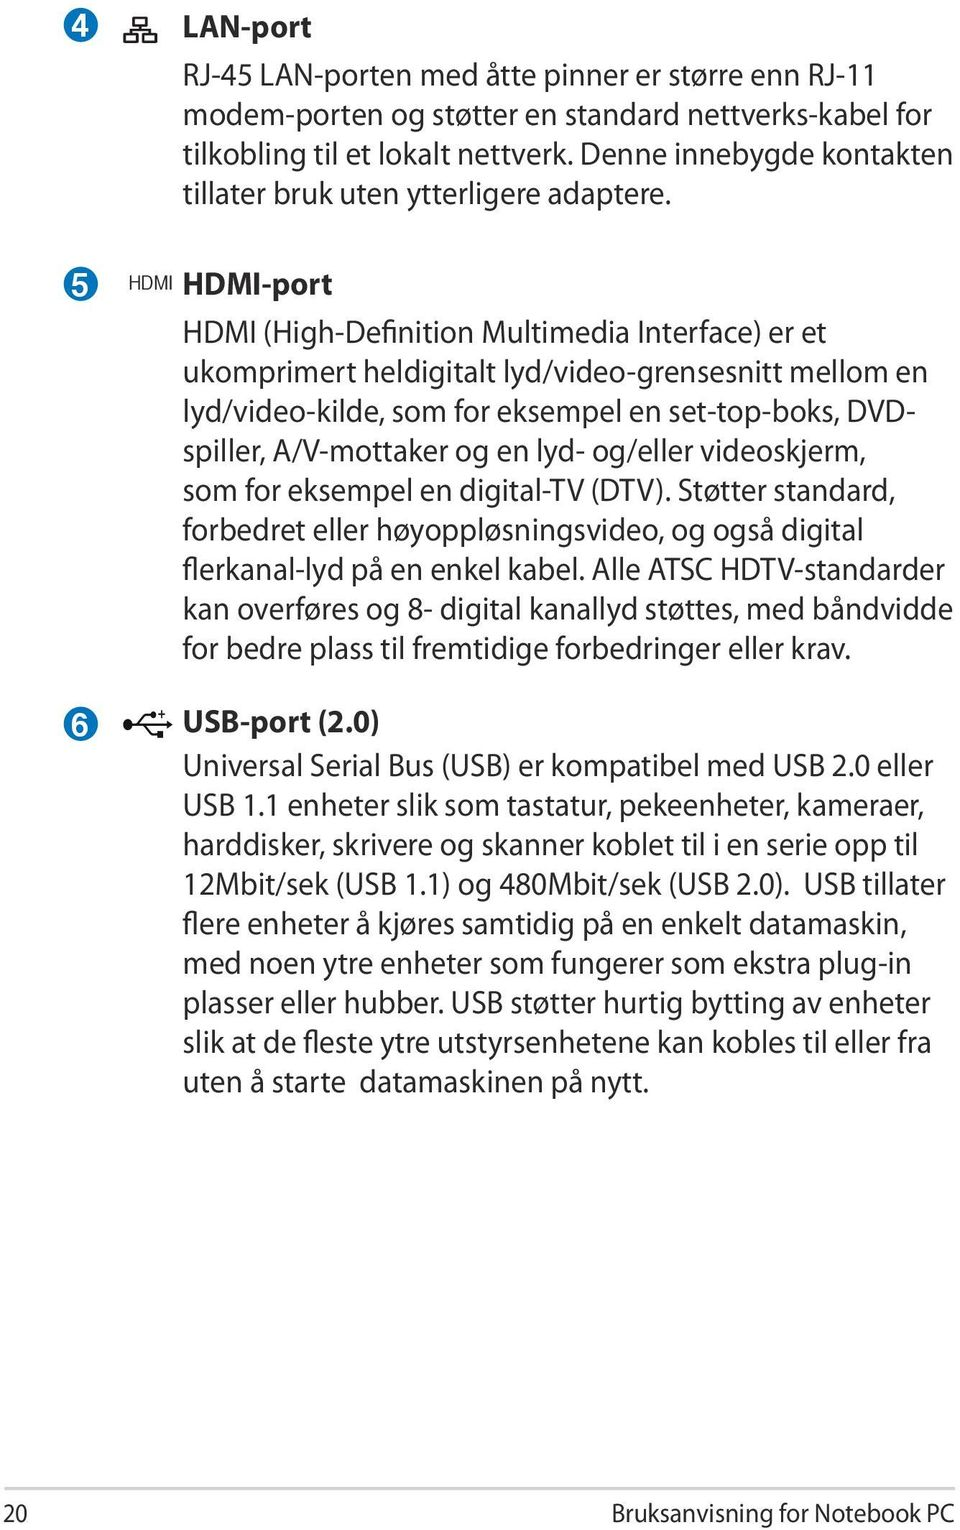 5 6 HDMI HDMI-port HDMI (High-Definition Multimedia Interface) er et ukomprimert heldigitalt lyd/video-grensesnitt mellom en lyd/video-kilde, som for eksempel en set-top-boks, DVDspiller,